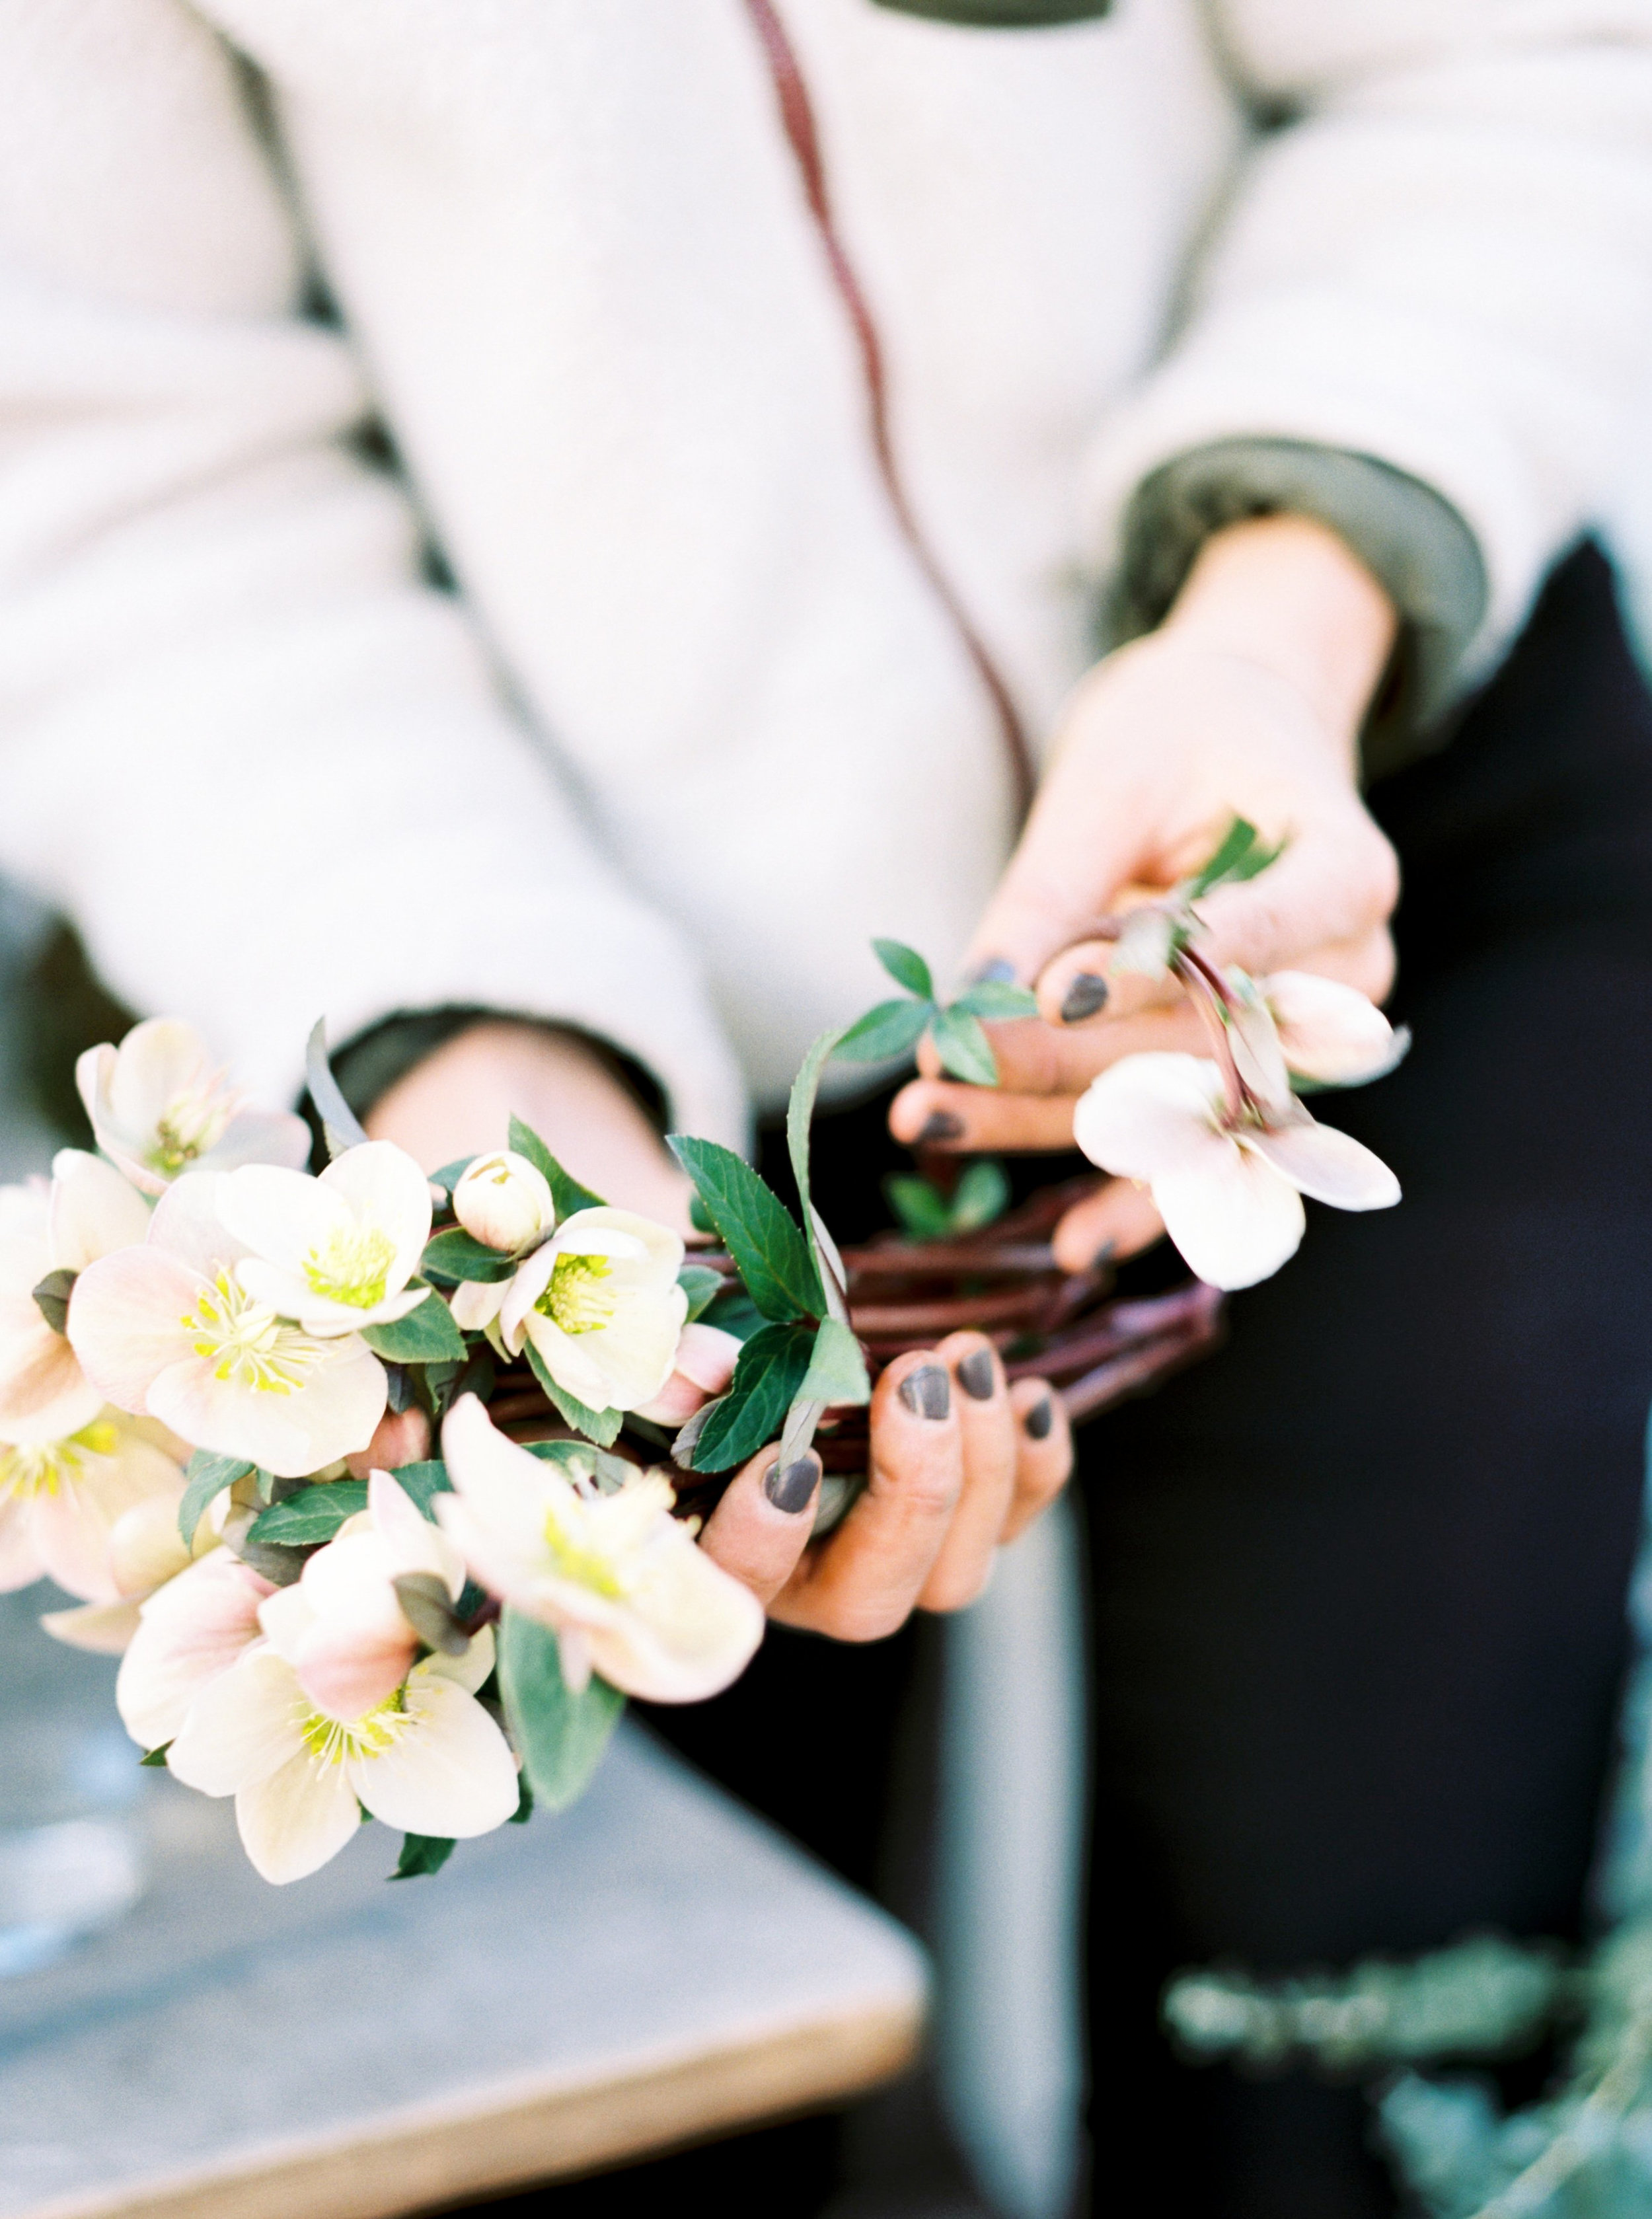 Rachel-Carter-Photography-Denver-Colorado-Film-Florist-Photographer-26.jpg